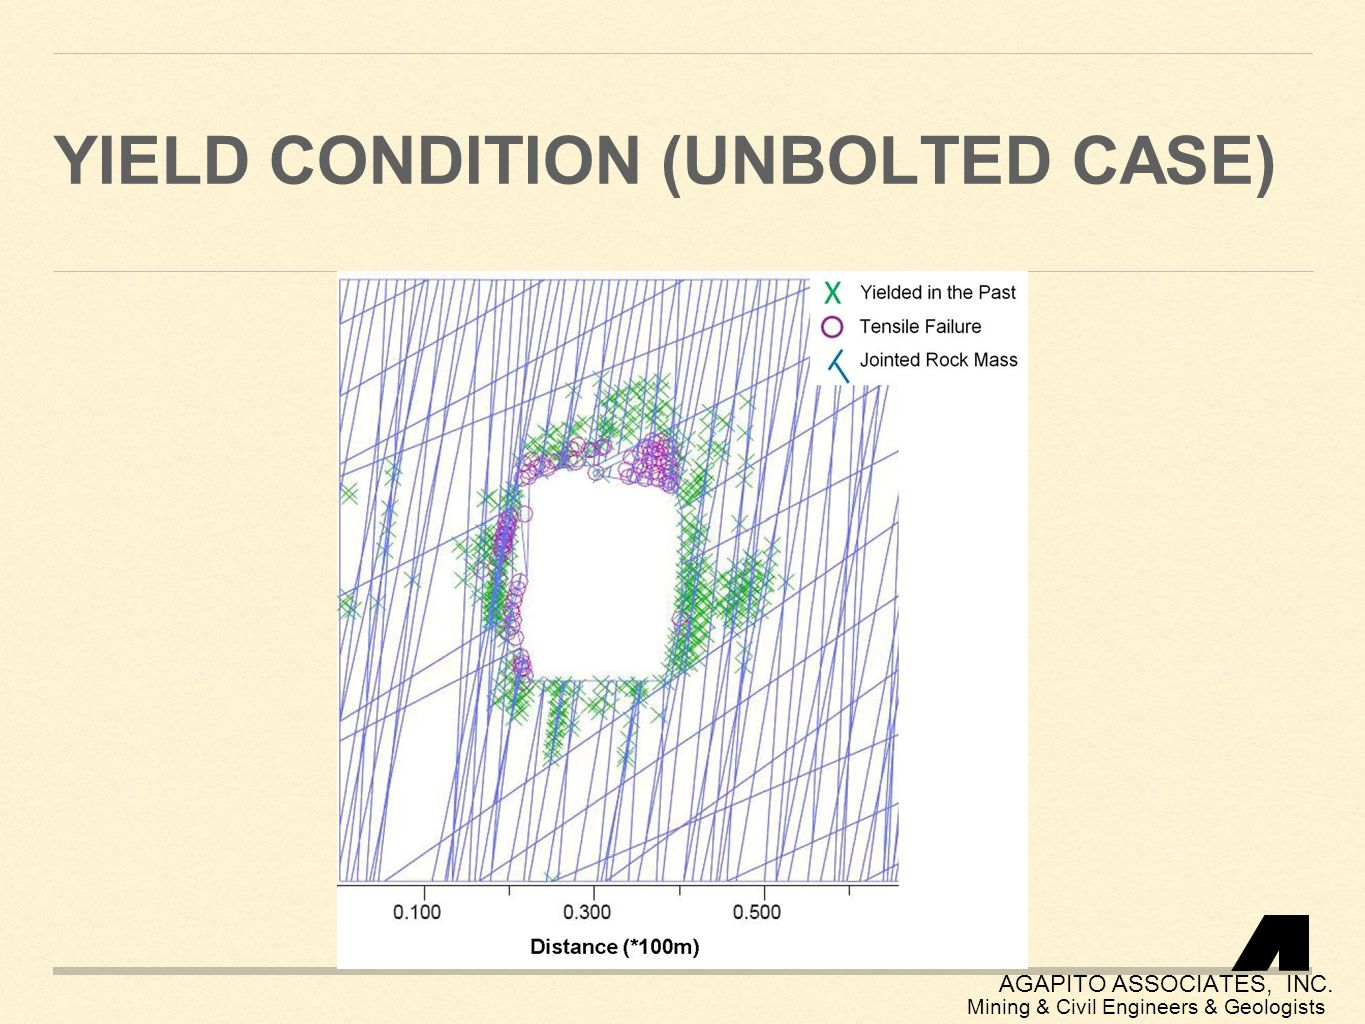 Yield condition (unbolted case)